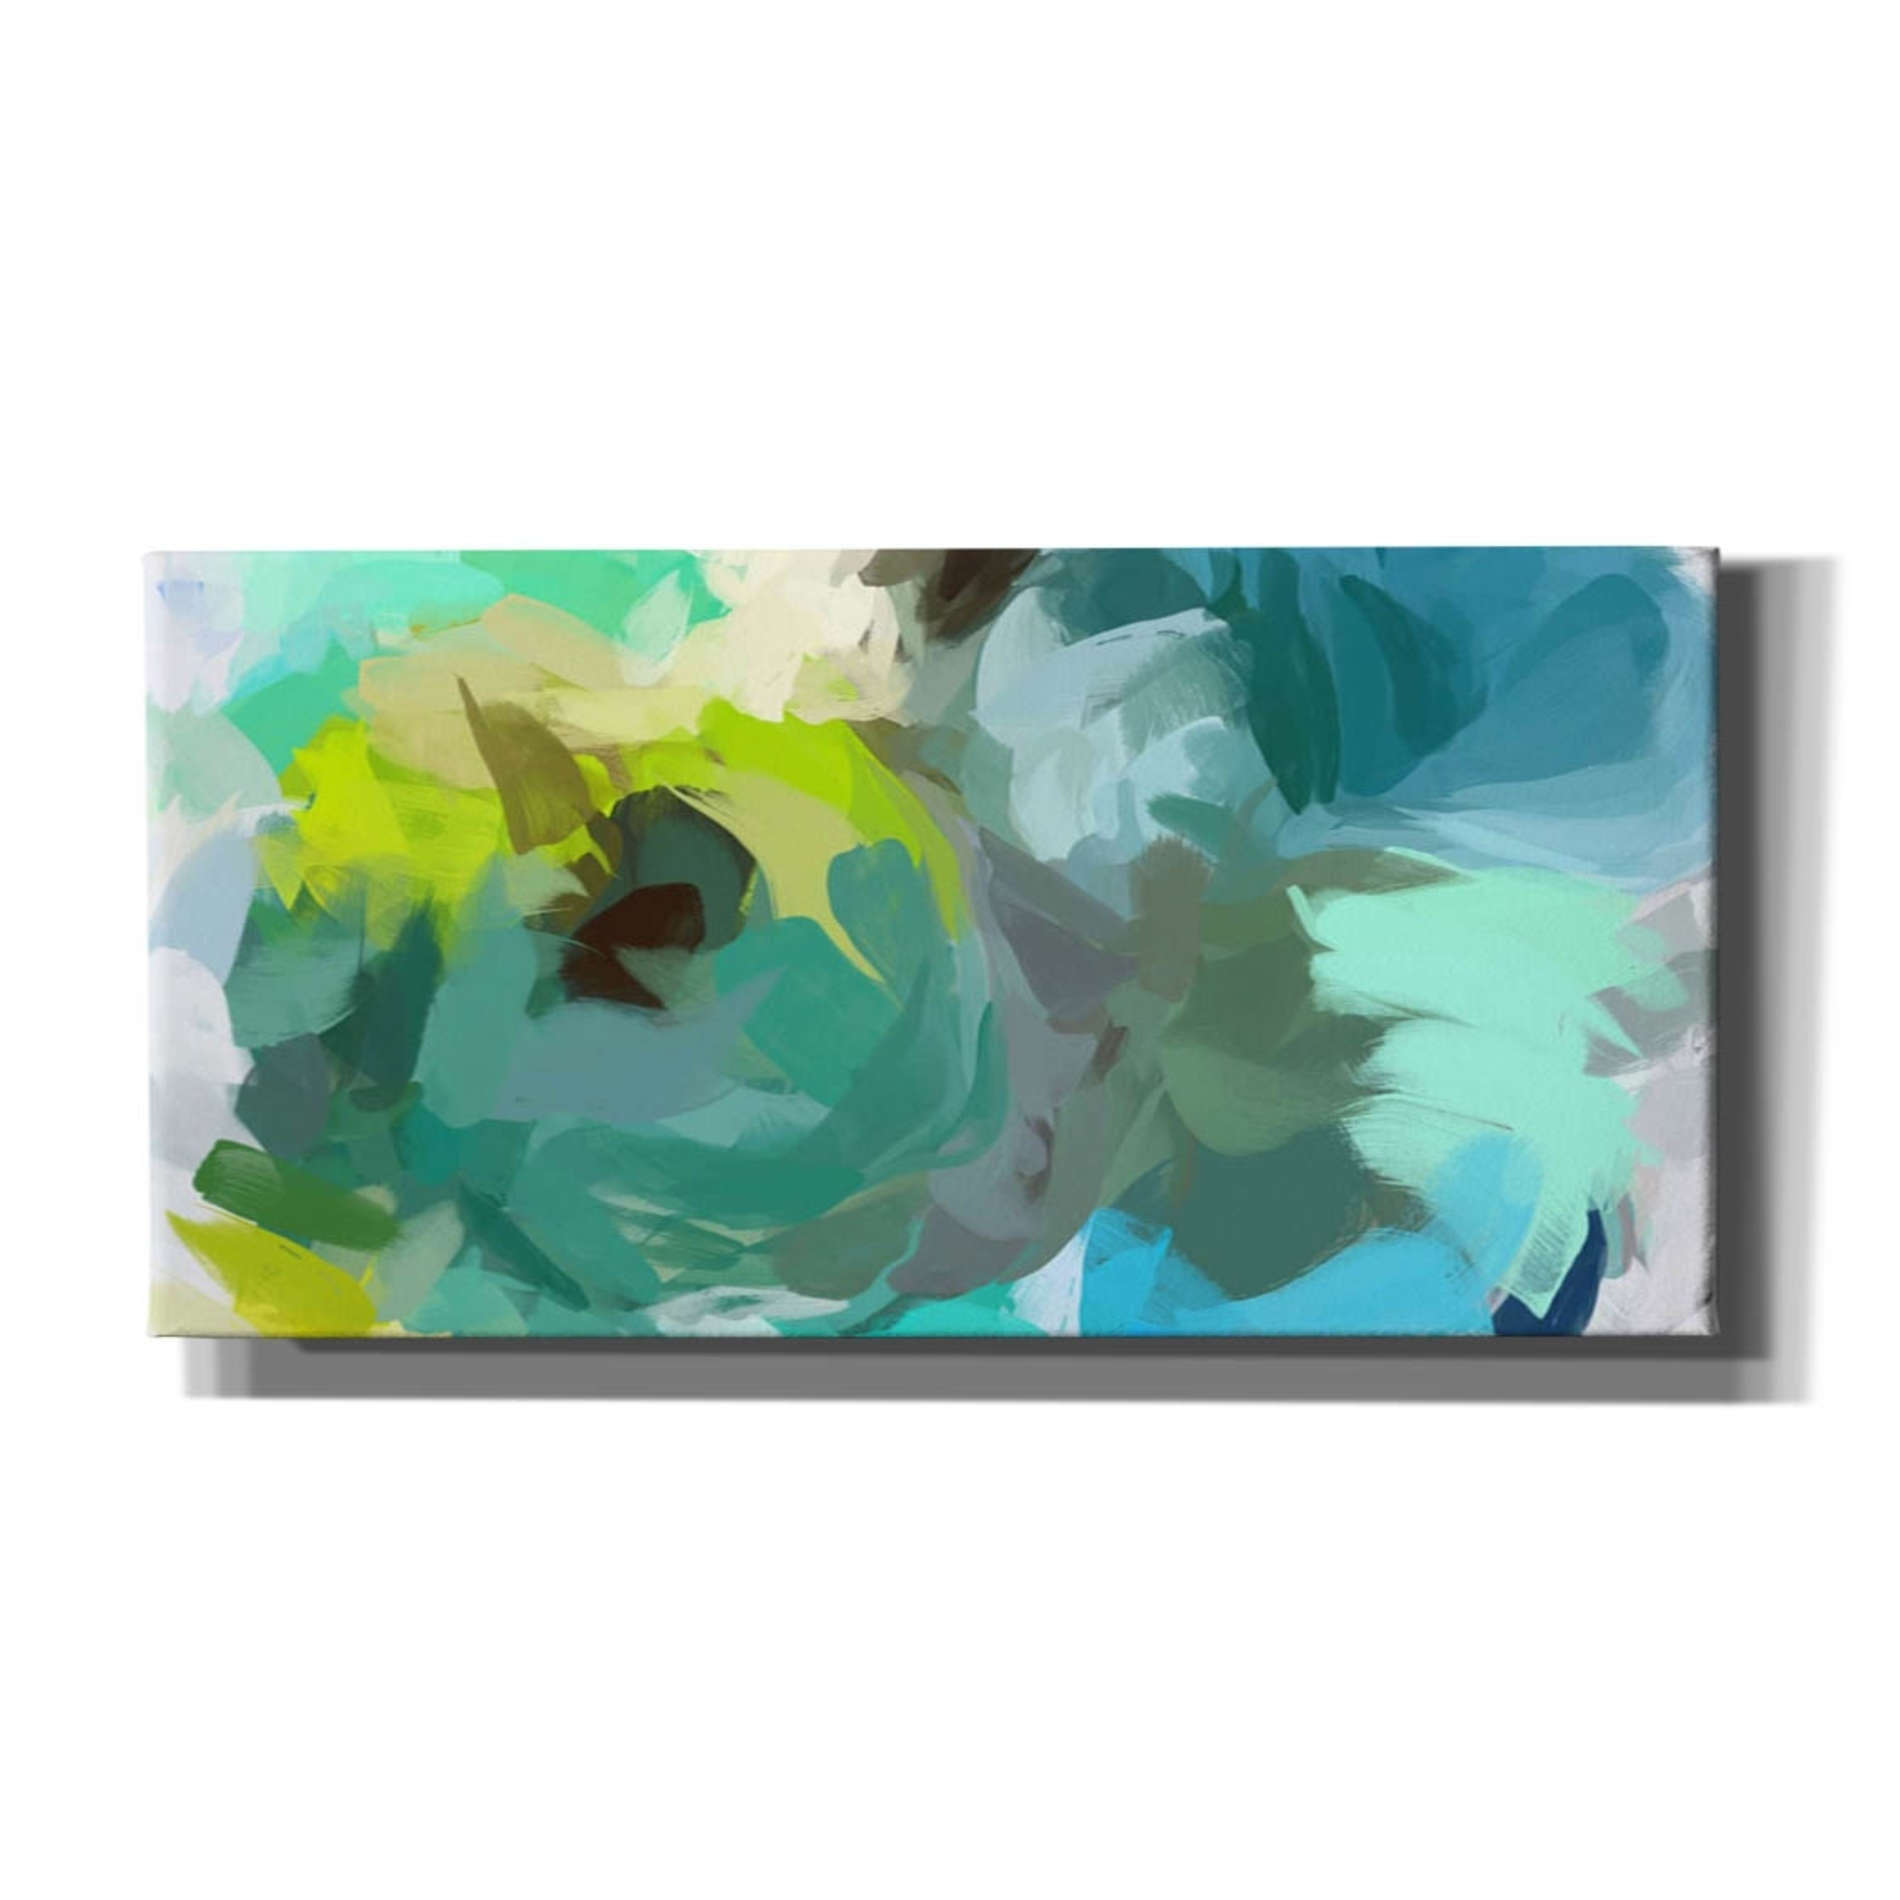 Epic Graffiti The Shades Of Green Abstract 2 By Irena Orlov Giclee Canvas Wall Art 24 X12 Overstock 29065501